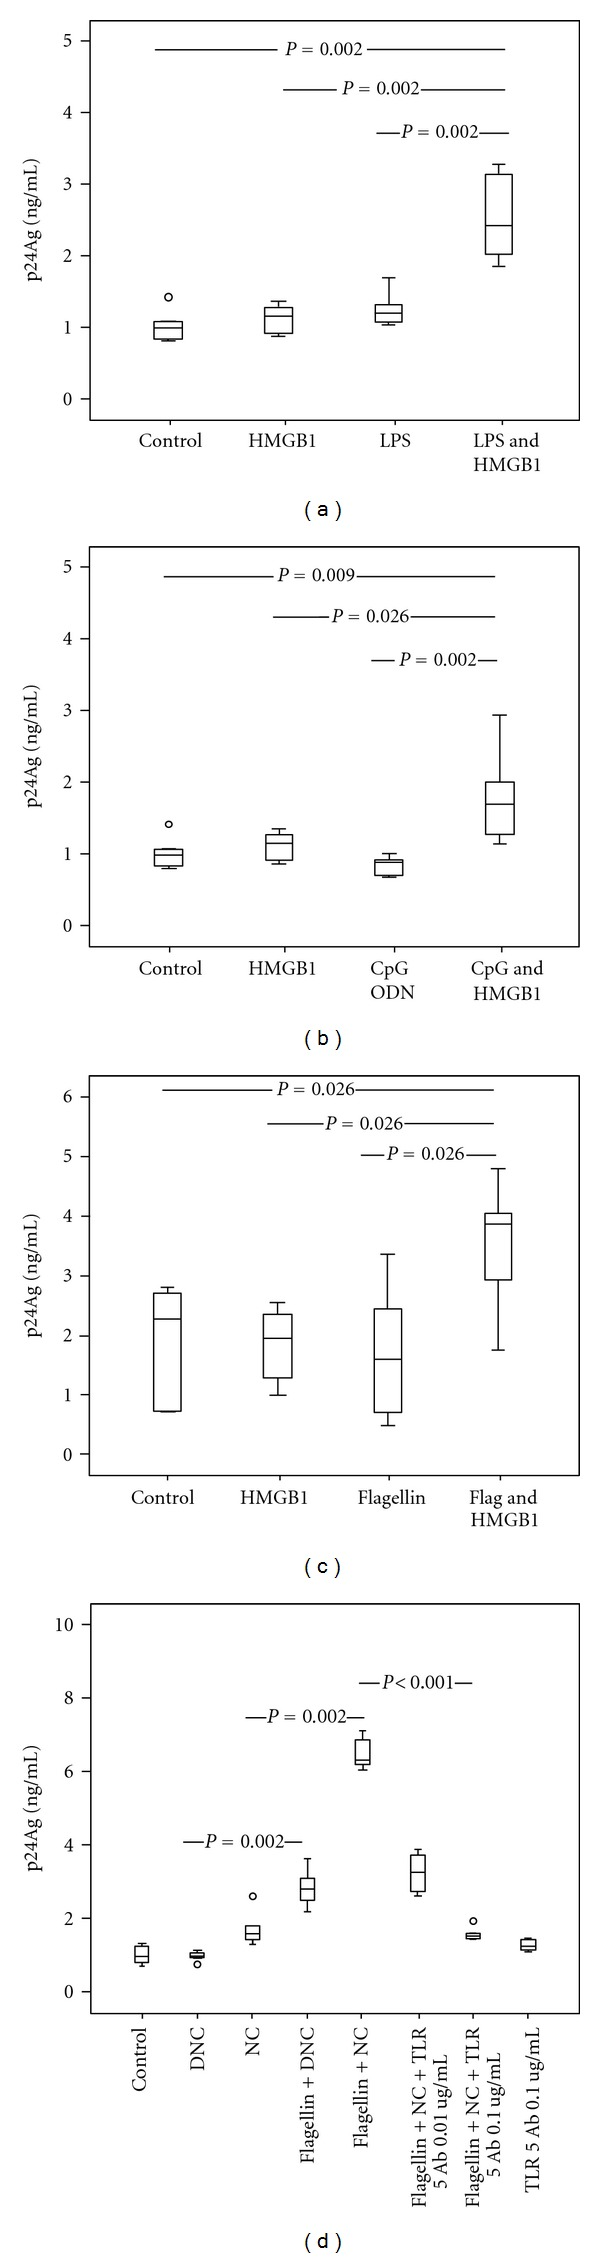 Interacting effect of recombinant HMGB1 and TLR-ligand complexes in U1 cells. Inhibition of flagellin complexes induced HIV-1 replication by anti-TLR5 antibodies. U1 cells were stimulated with recombinant HMGB1 (1 μ g/mL) and TLR ligands: LPS 10 ng/mL (a), CpG-ODN 1 μ g/mL (b) and flagellin 10 ng/mL (c) alone or in complexes. (d) U1 cells were incubated with 0.1 and 0.01 ug/mL anti-TLR5 antibodies (TLR5 Ab) for 1 hour and then exposed to necrotic extract (NC) and HMGB1-depleted necrotic extract (DNC), alone or in complexes with flagellin (10 ng/mL). HIV-1 replication was estimated after 48 hours of incubation. A dose-dependent inhibition of flagellin-necrotic extract complexes stimulatory effect is present in wells pretreated with anti-TLR5 antibodies ( P for trend